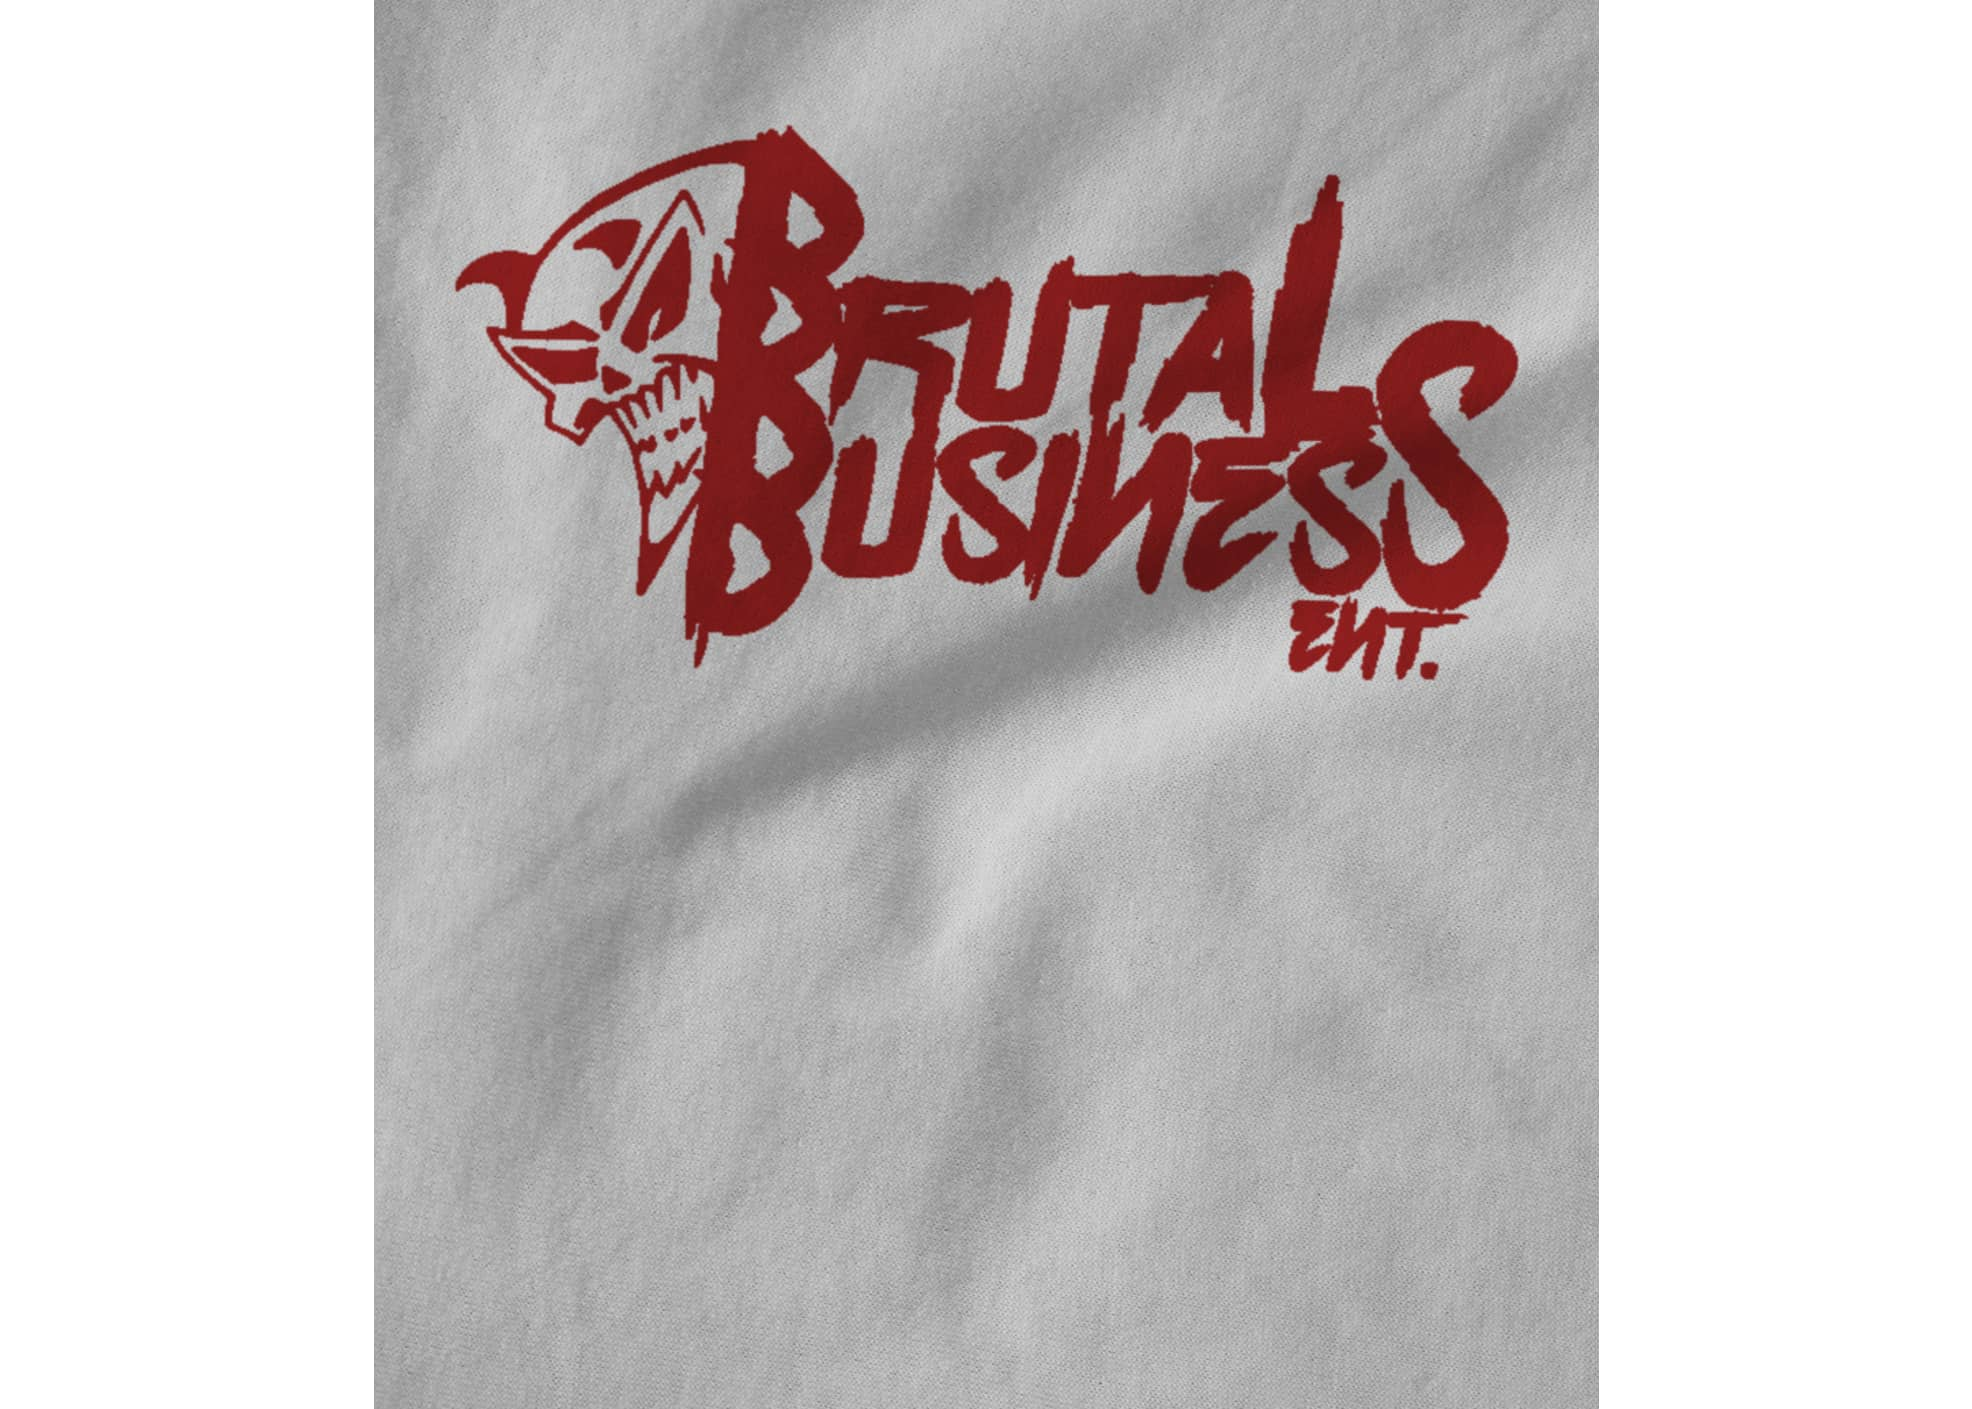 Brutal business ent brutal business  black  1595802887